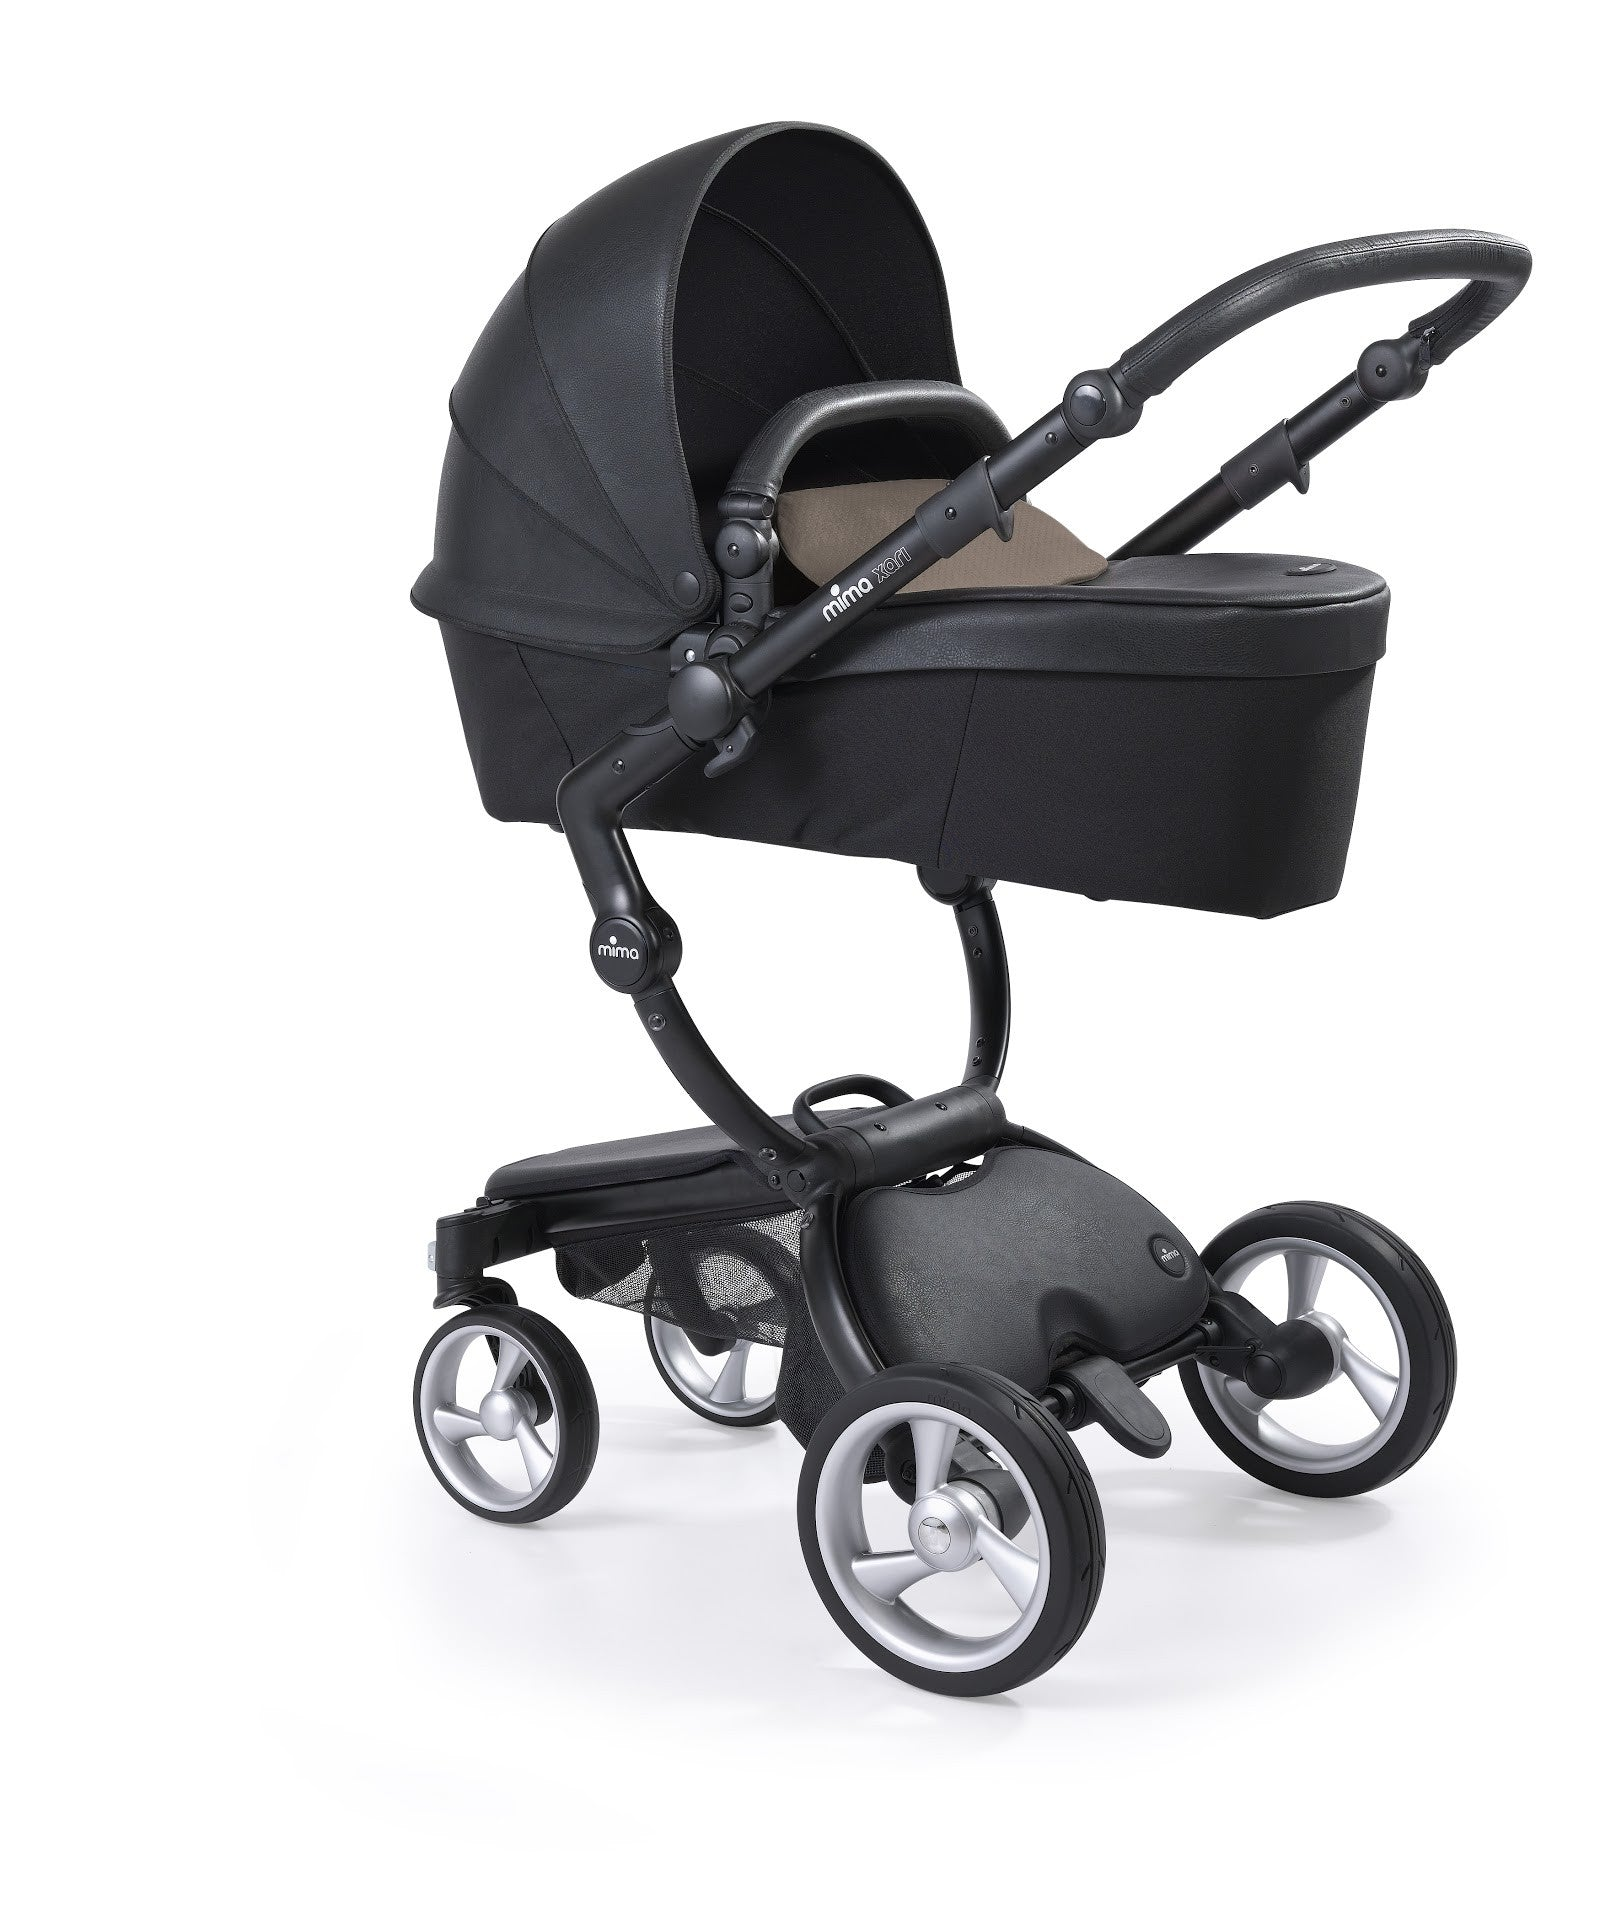 Stroller, Baby Strollers Choosing The Best One For Your Baby